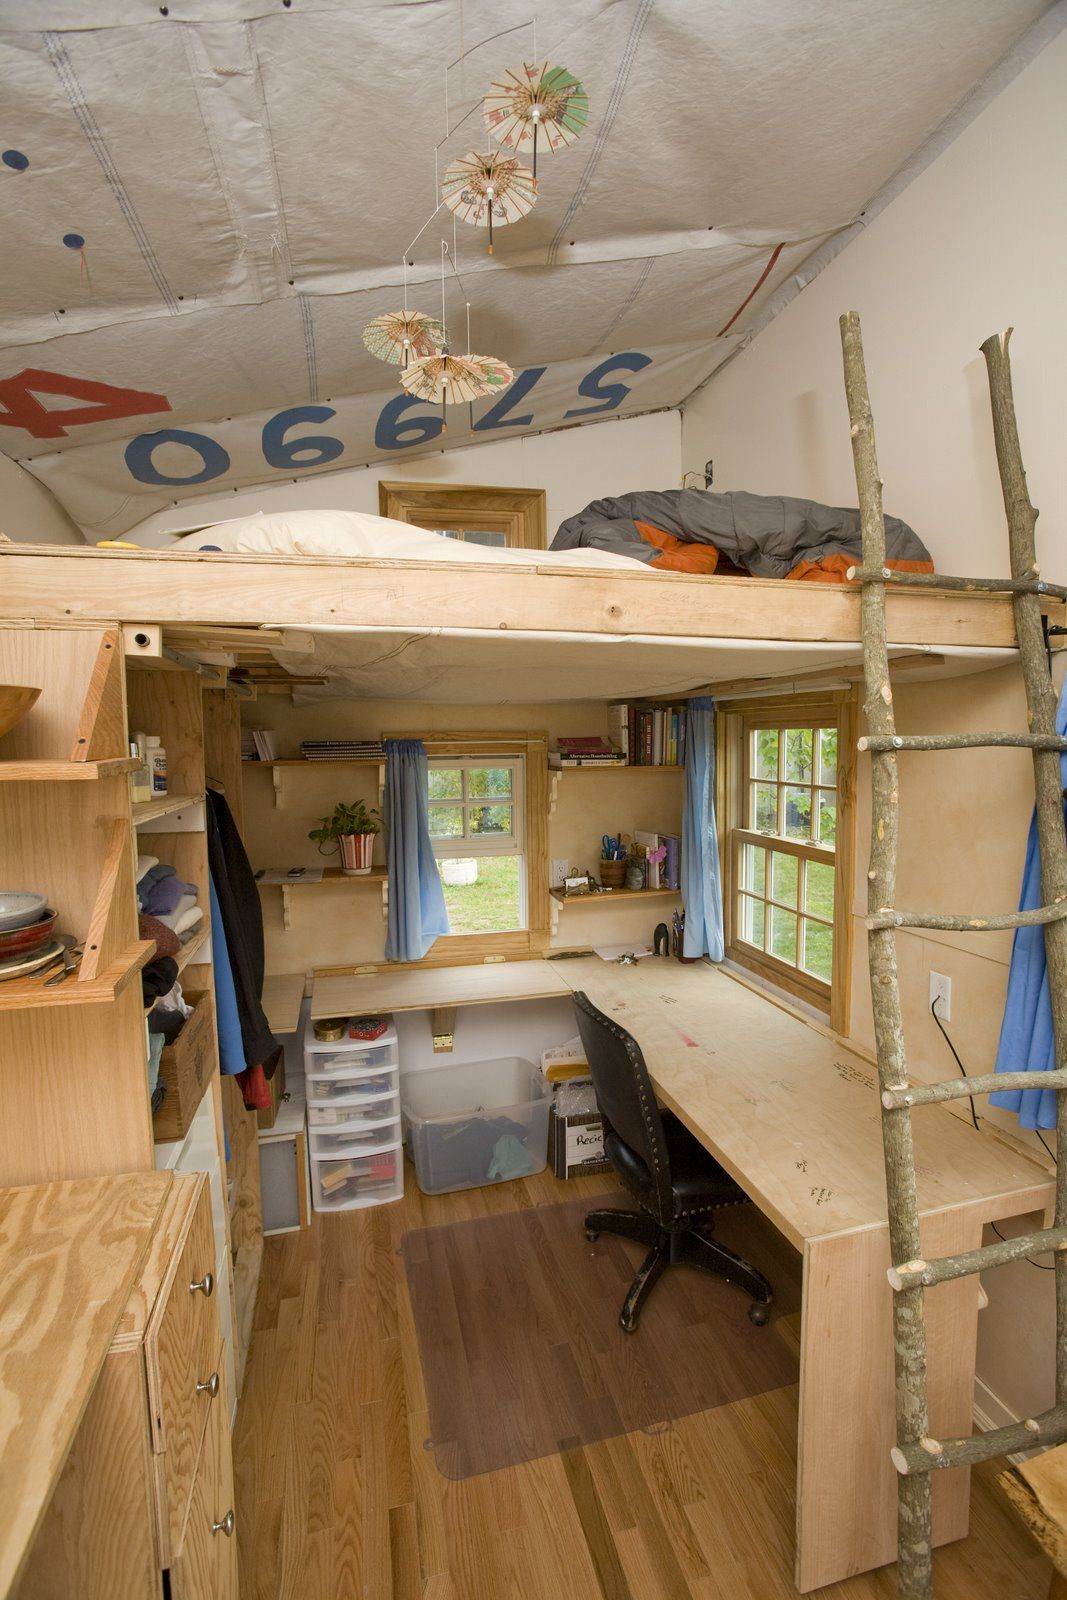 17 Best images about Tiny House Living on Pinterest Dome homes